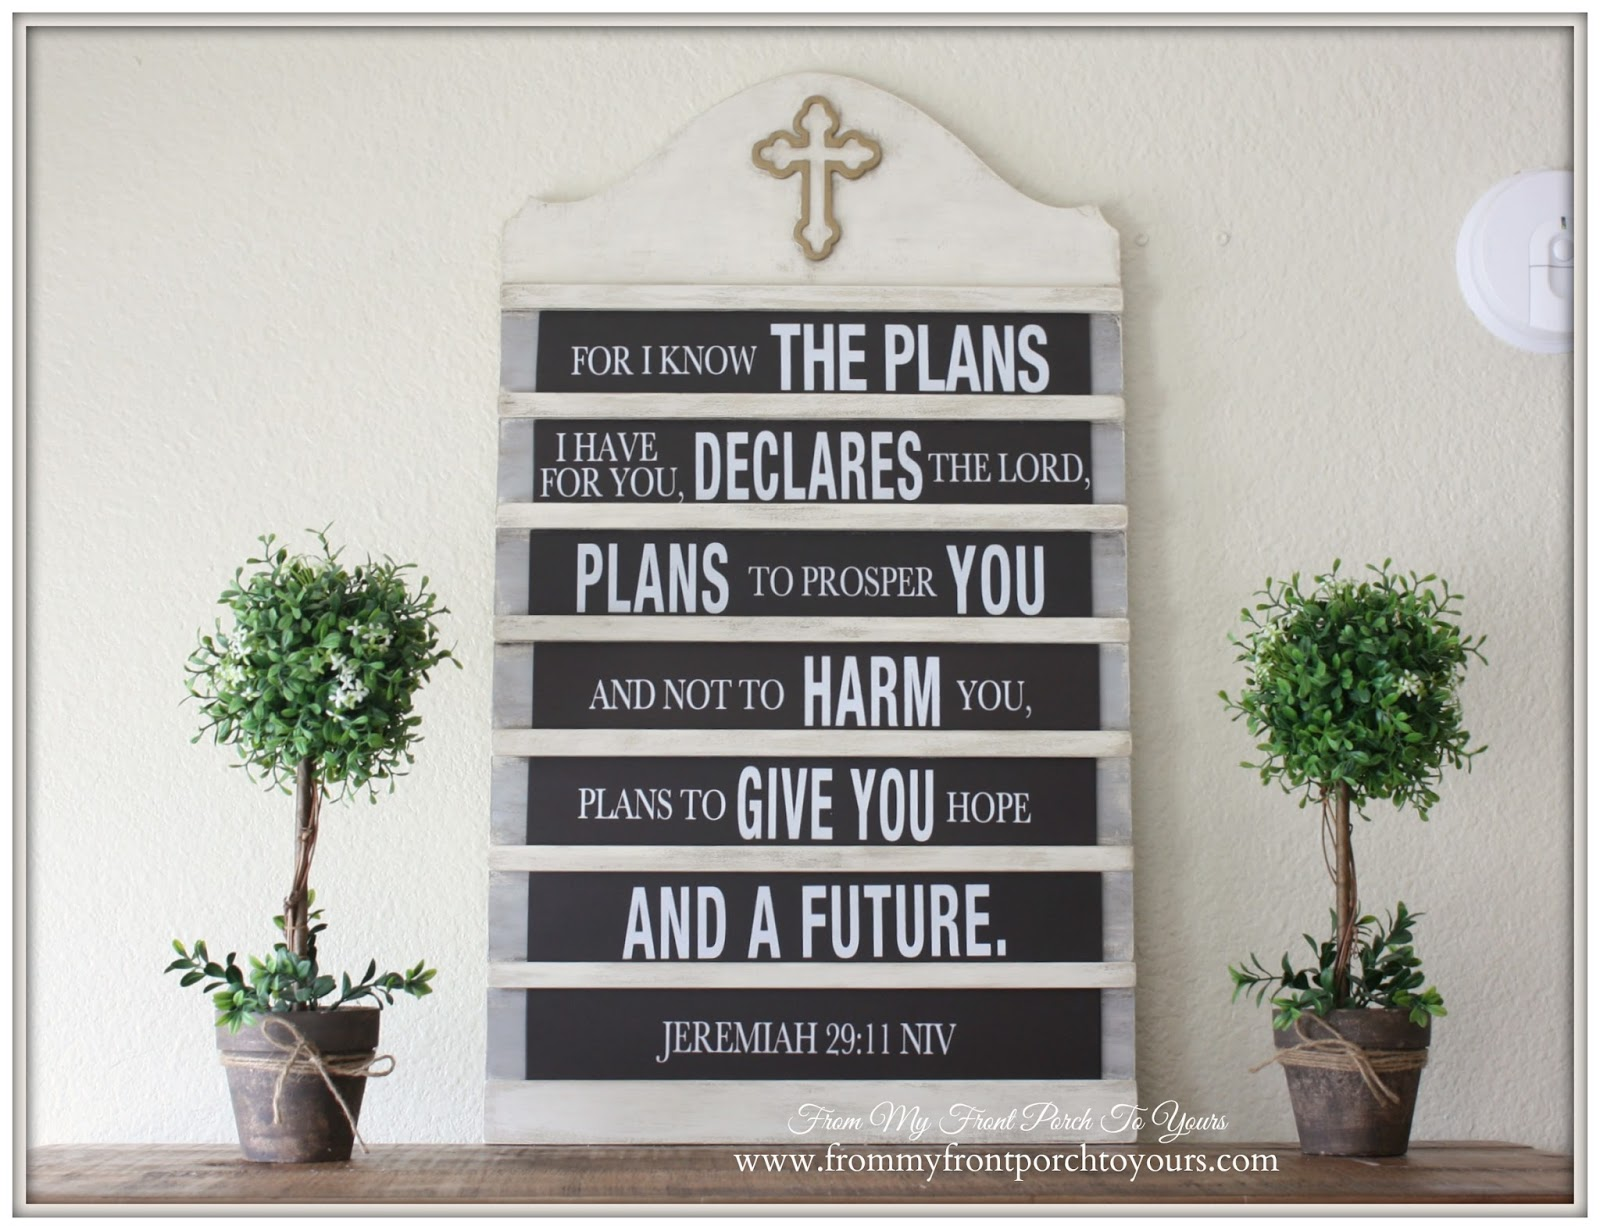 French Farmhouse Spring -DIY Hymnal Board-Breakfast Nook- From My Front Porch To Yours